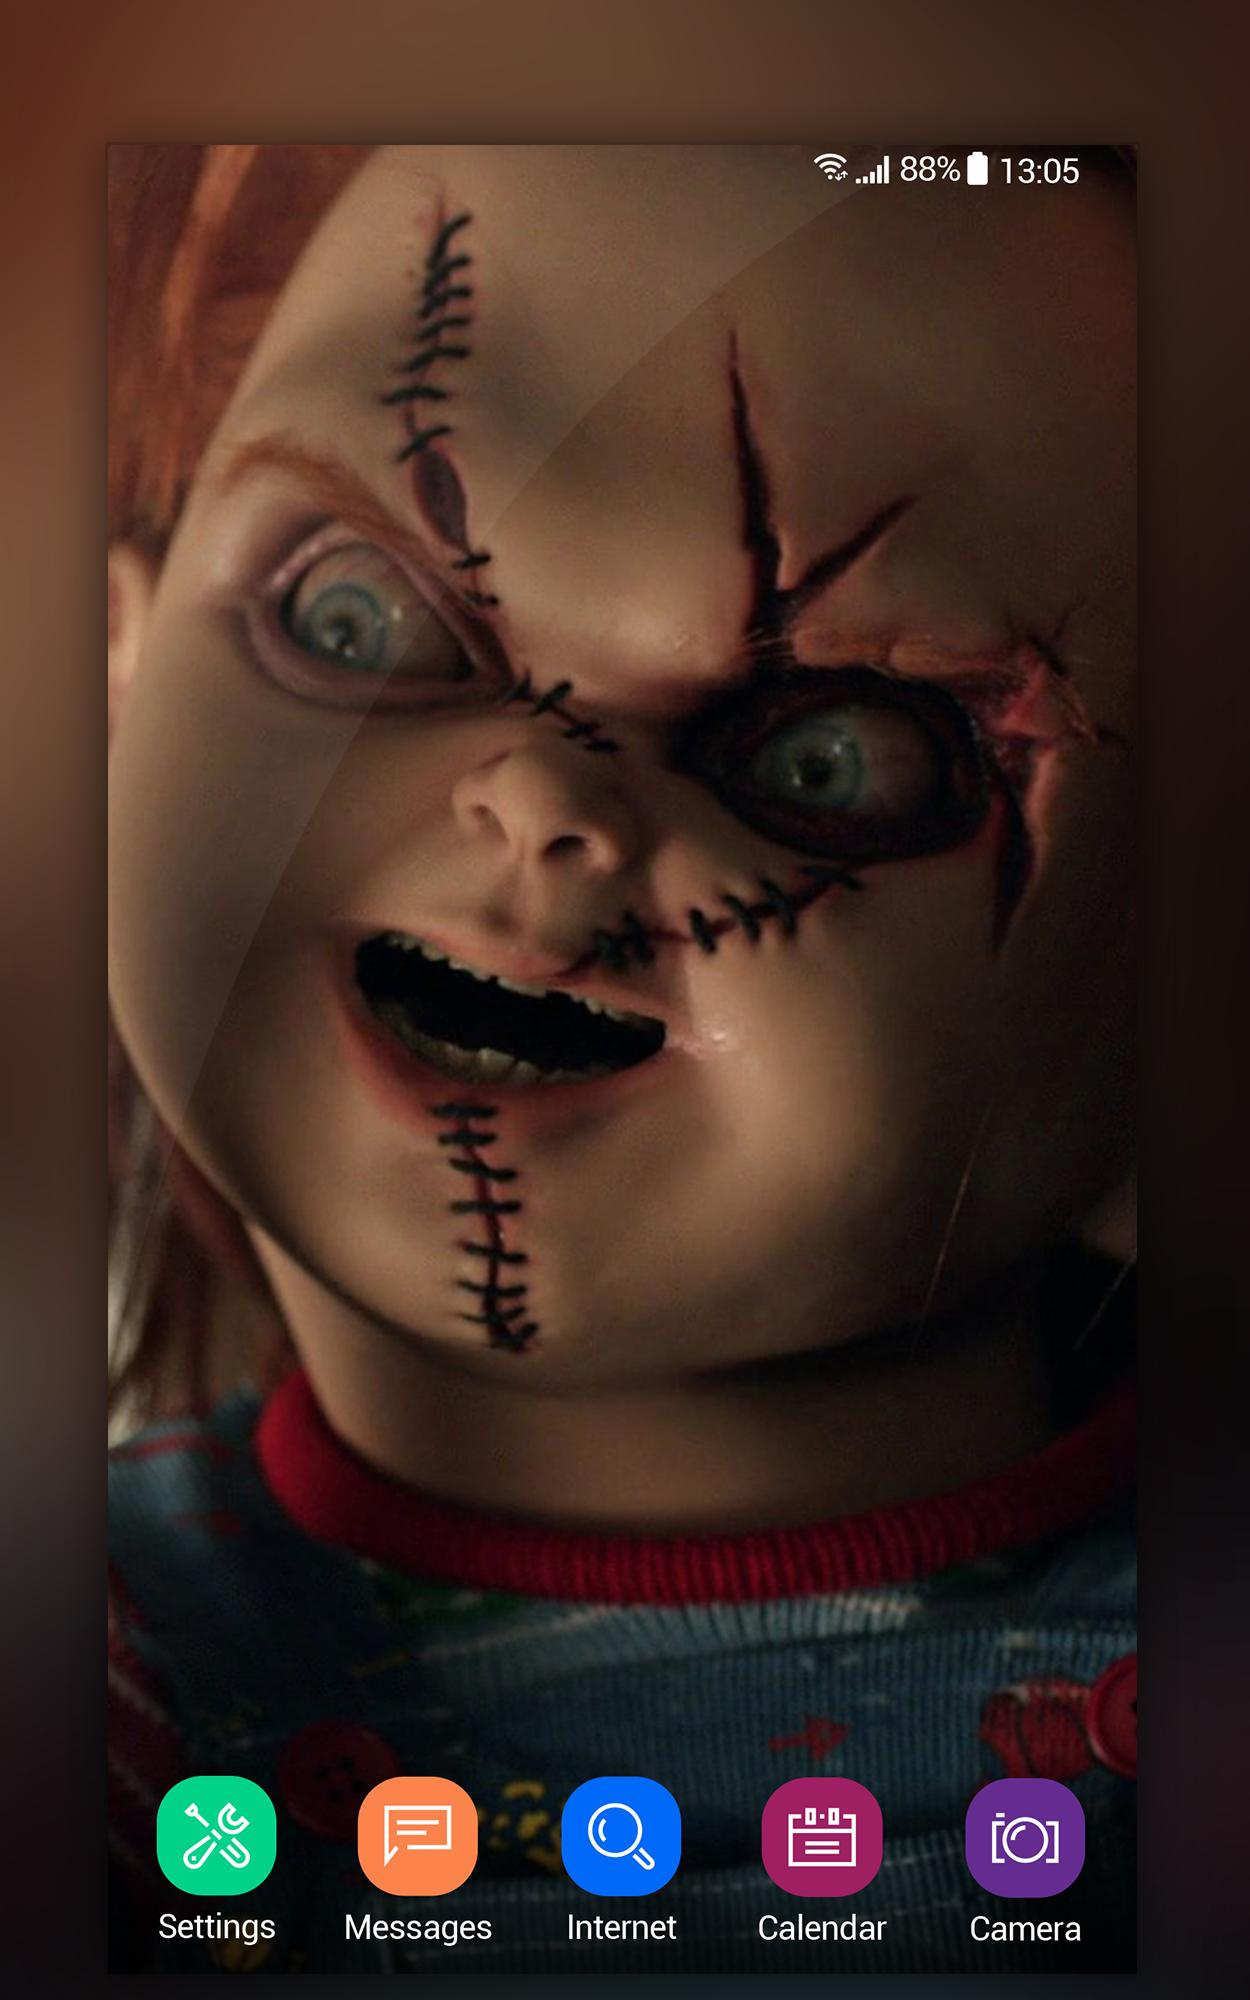 Chucky Doll Wallpapers Hd 4k Backgrounds For Android Apk Download